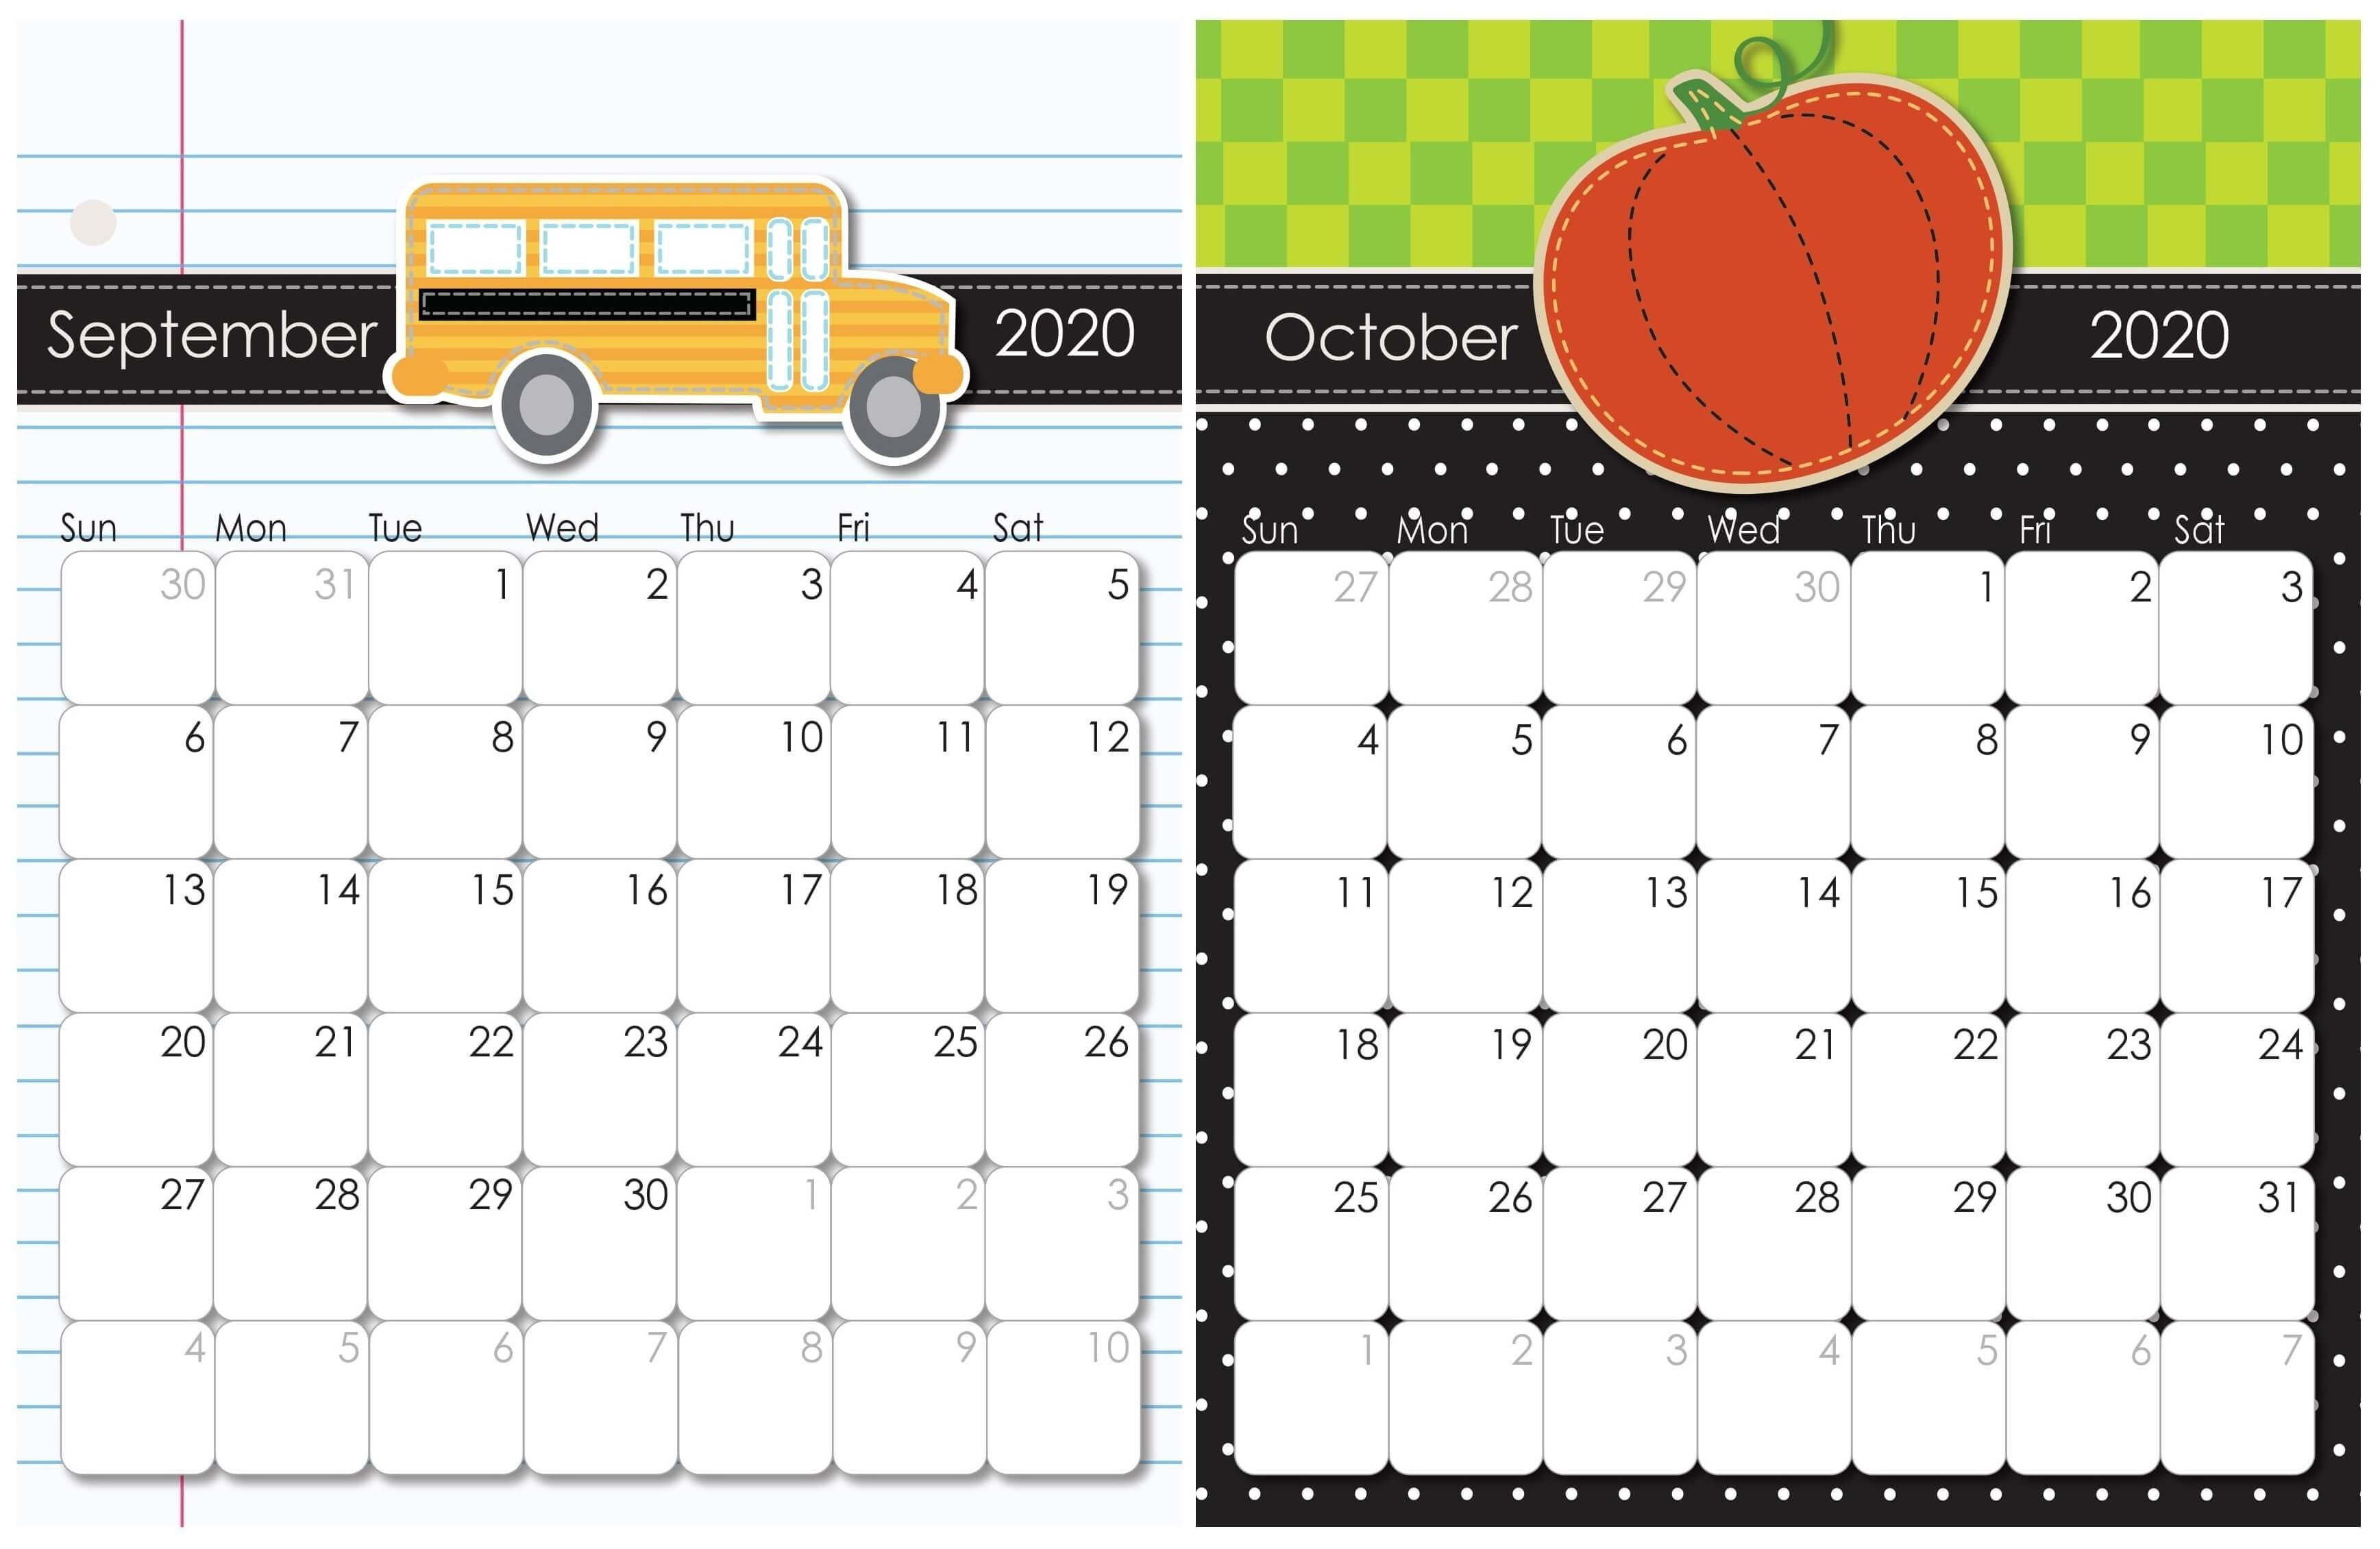 September 2020 To February 2021 Calendar With Notes | Free Printable Calendar Shop October 2020 - September 2021 Calendar